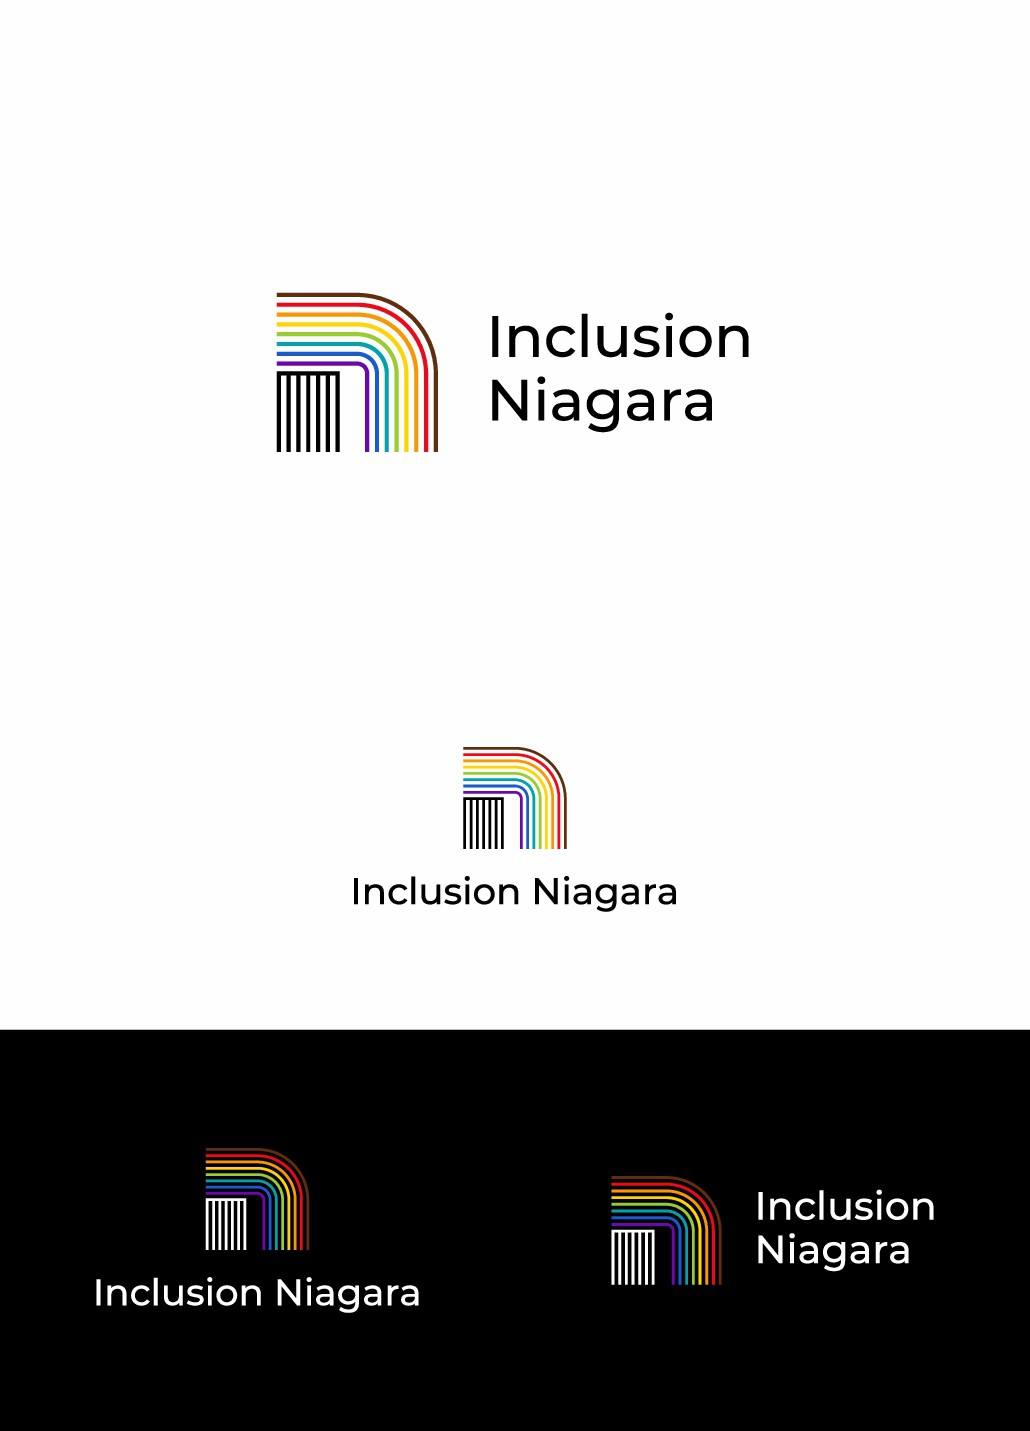 Care about equity, diversity and inclusion? This contest may be for you